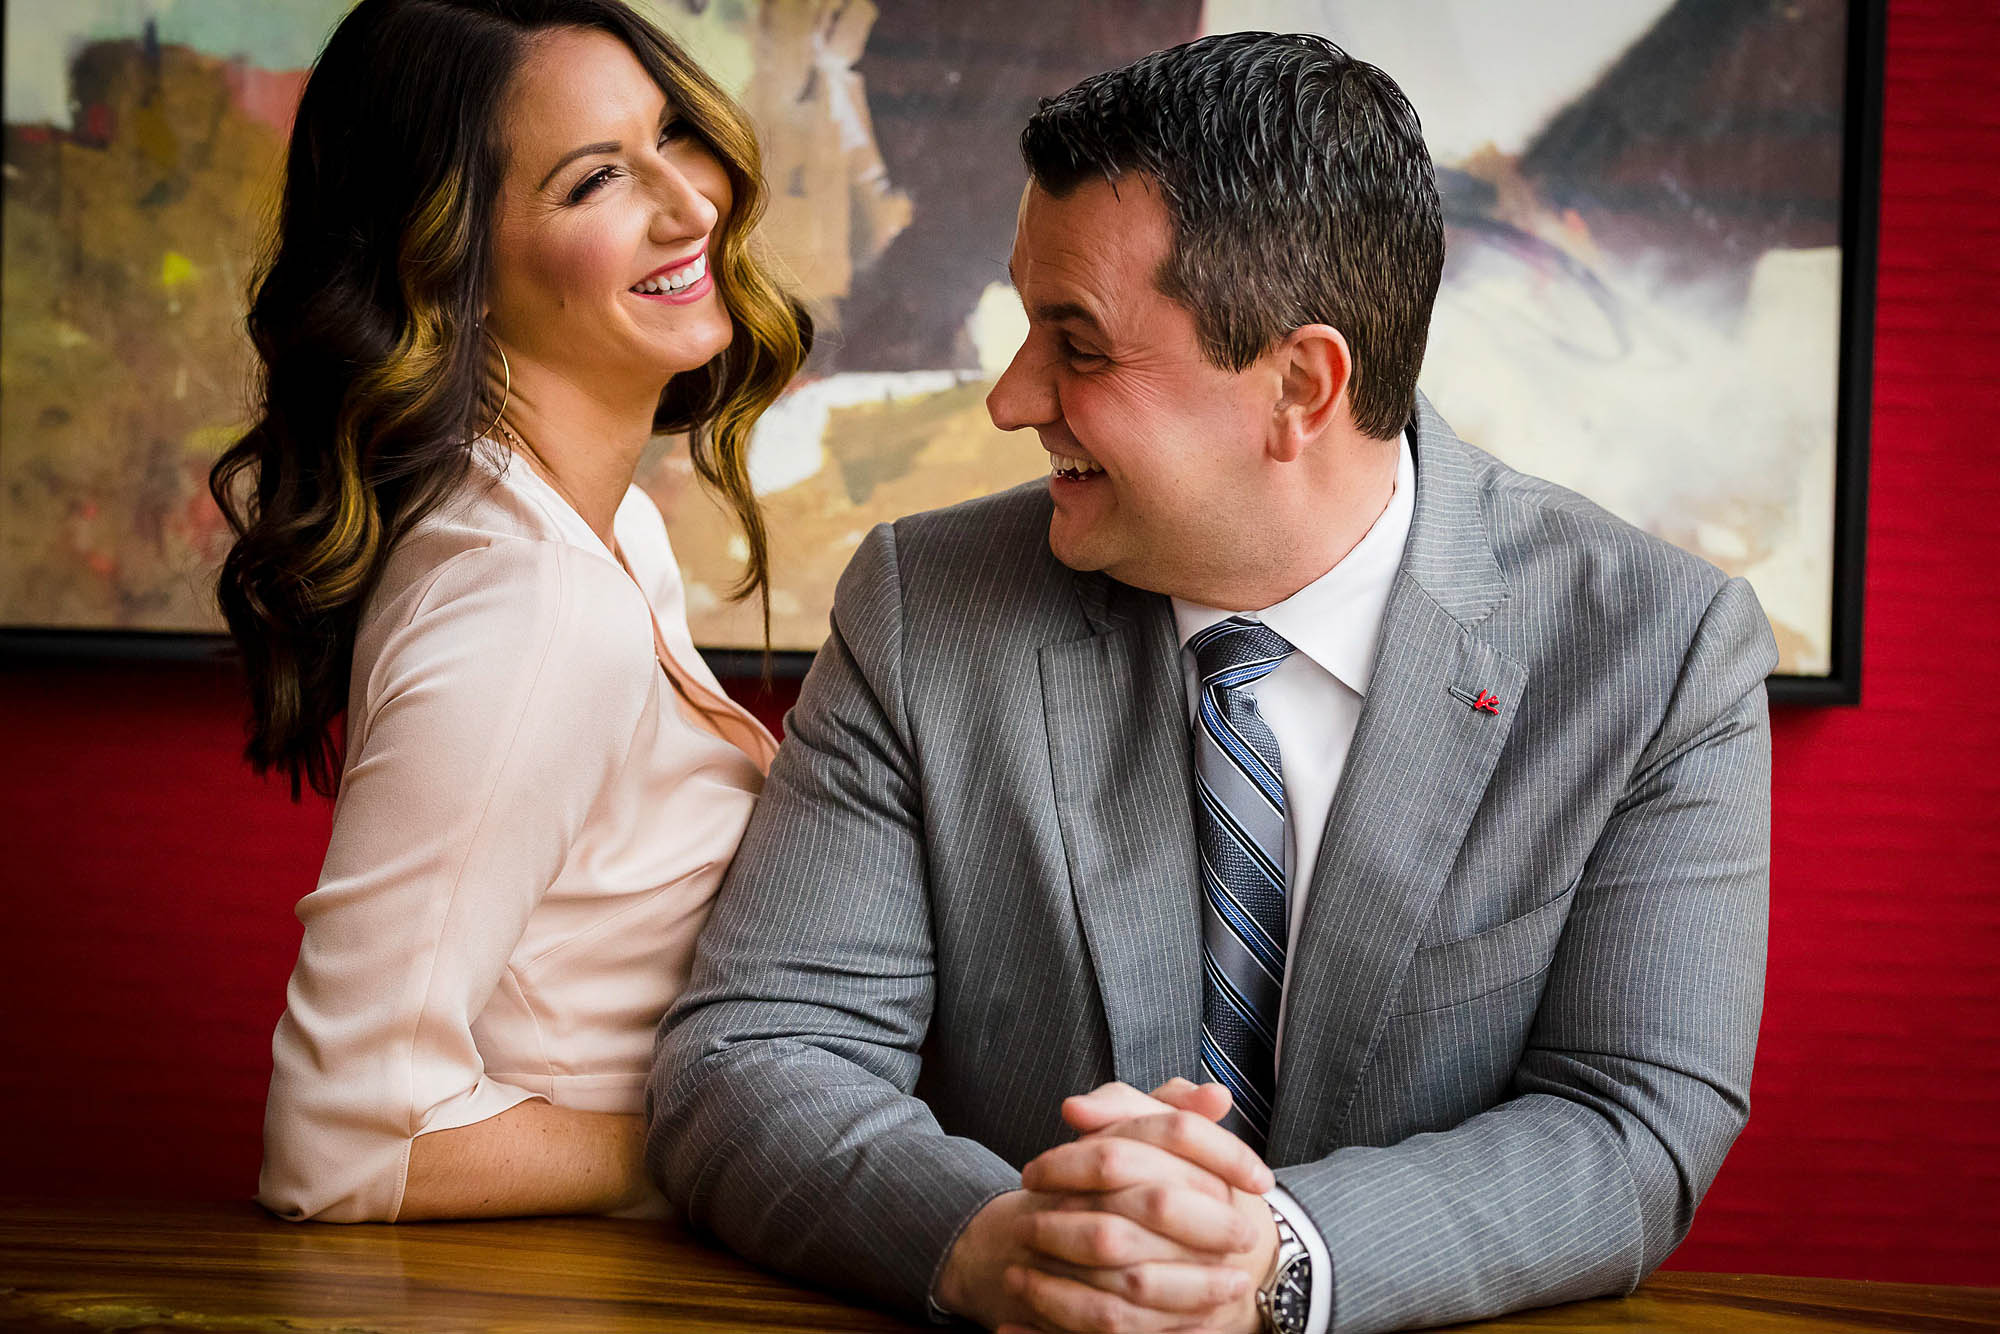 Woman laughs at her fiancé during their engagement photo session in Cuyahoga Falls.